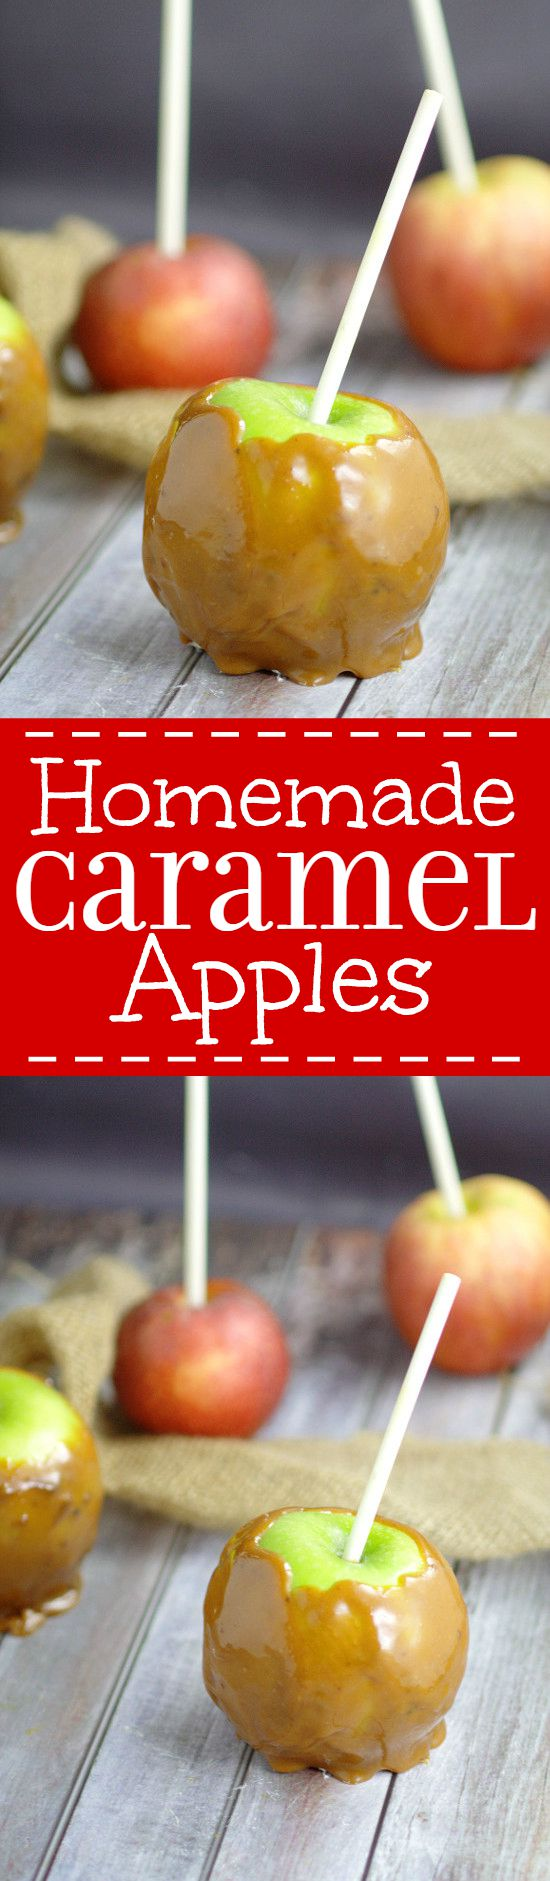 Homemade Taffy Apples | Best Caramel Apples Recipe